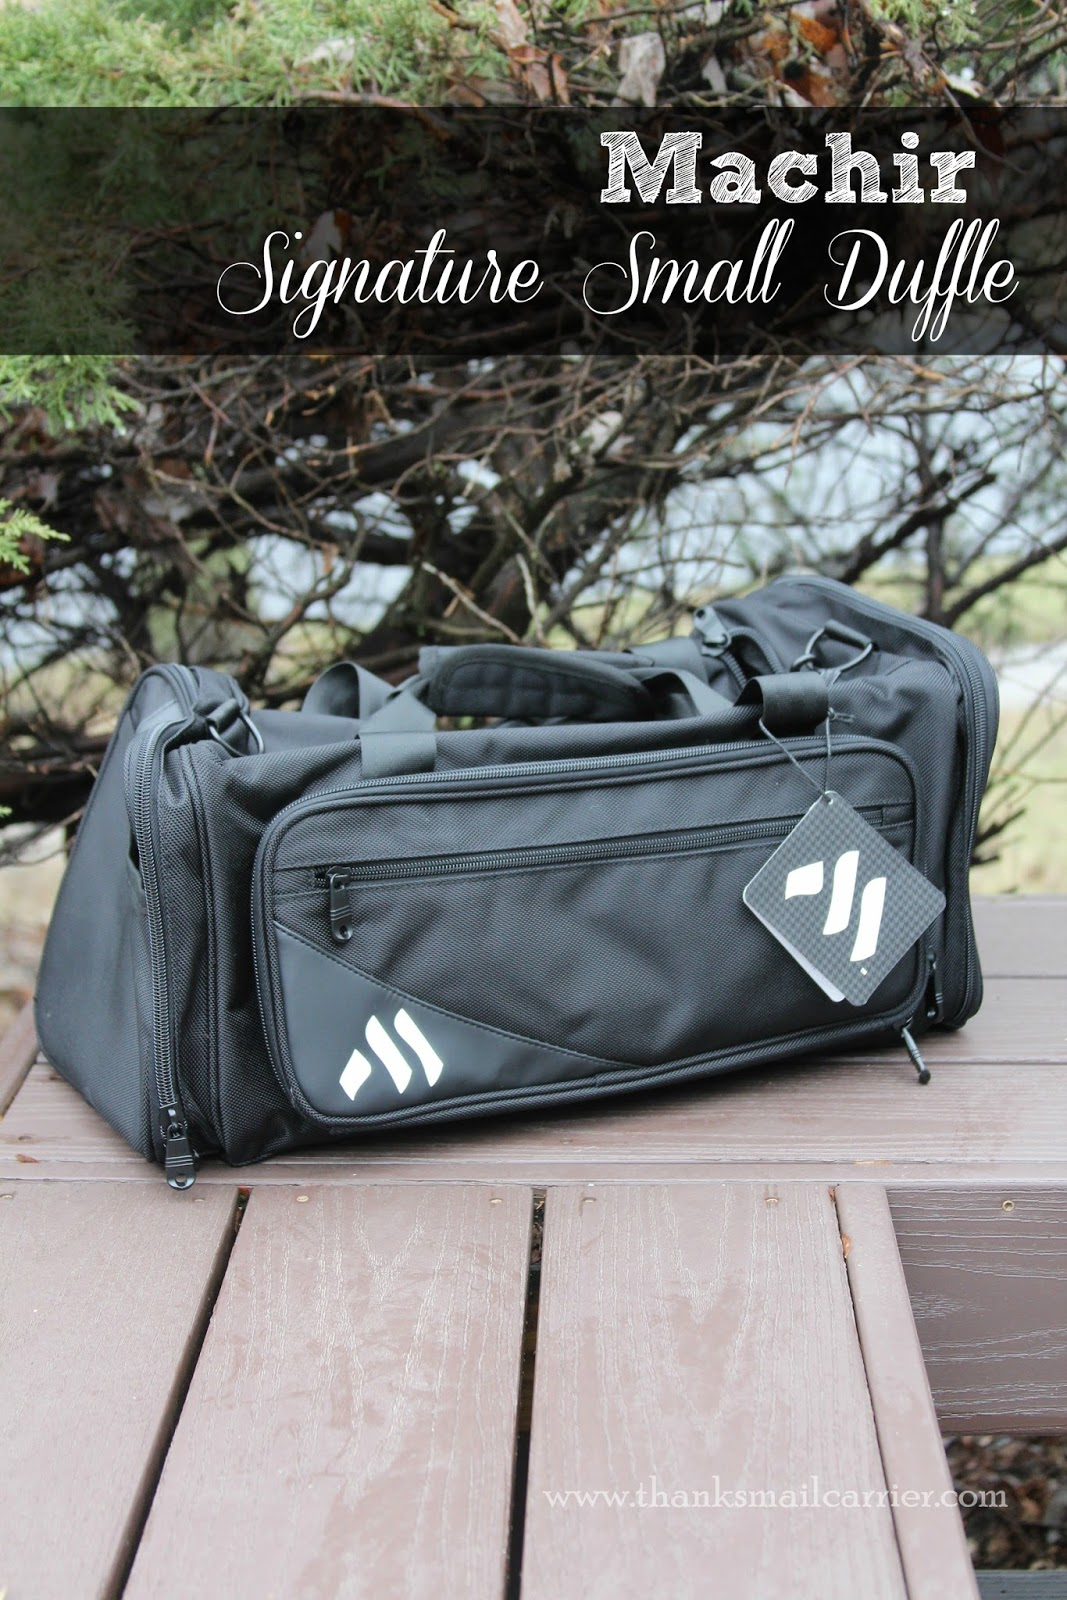 Machir Signature Small Duffle